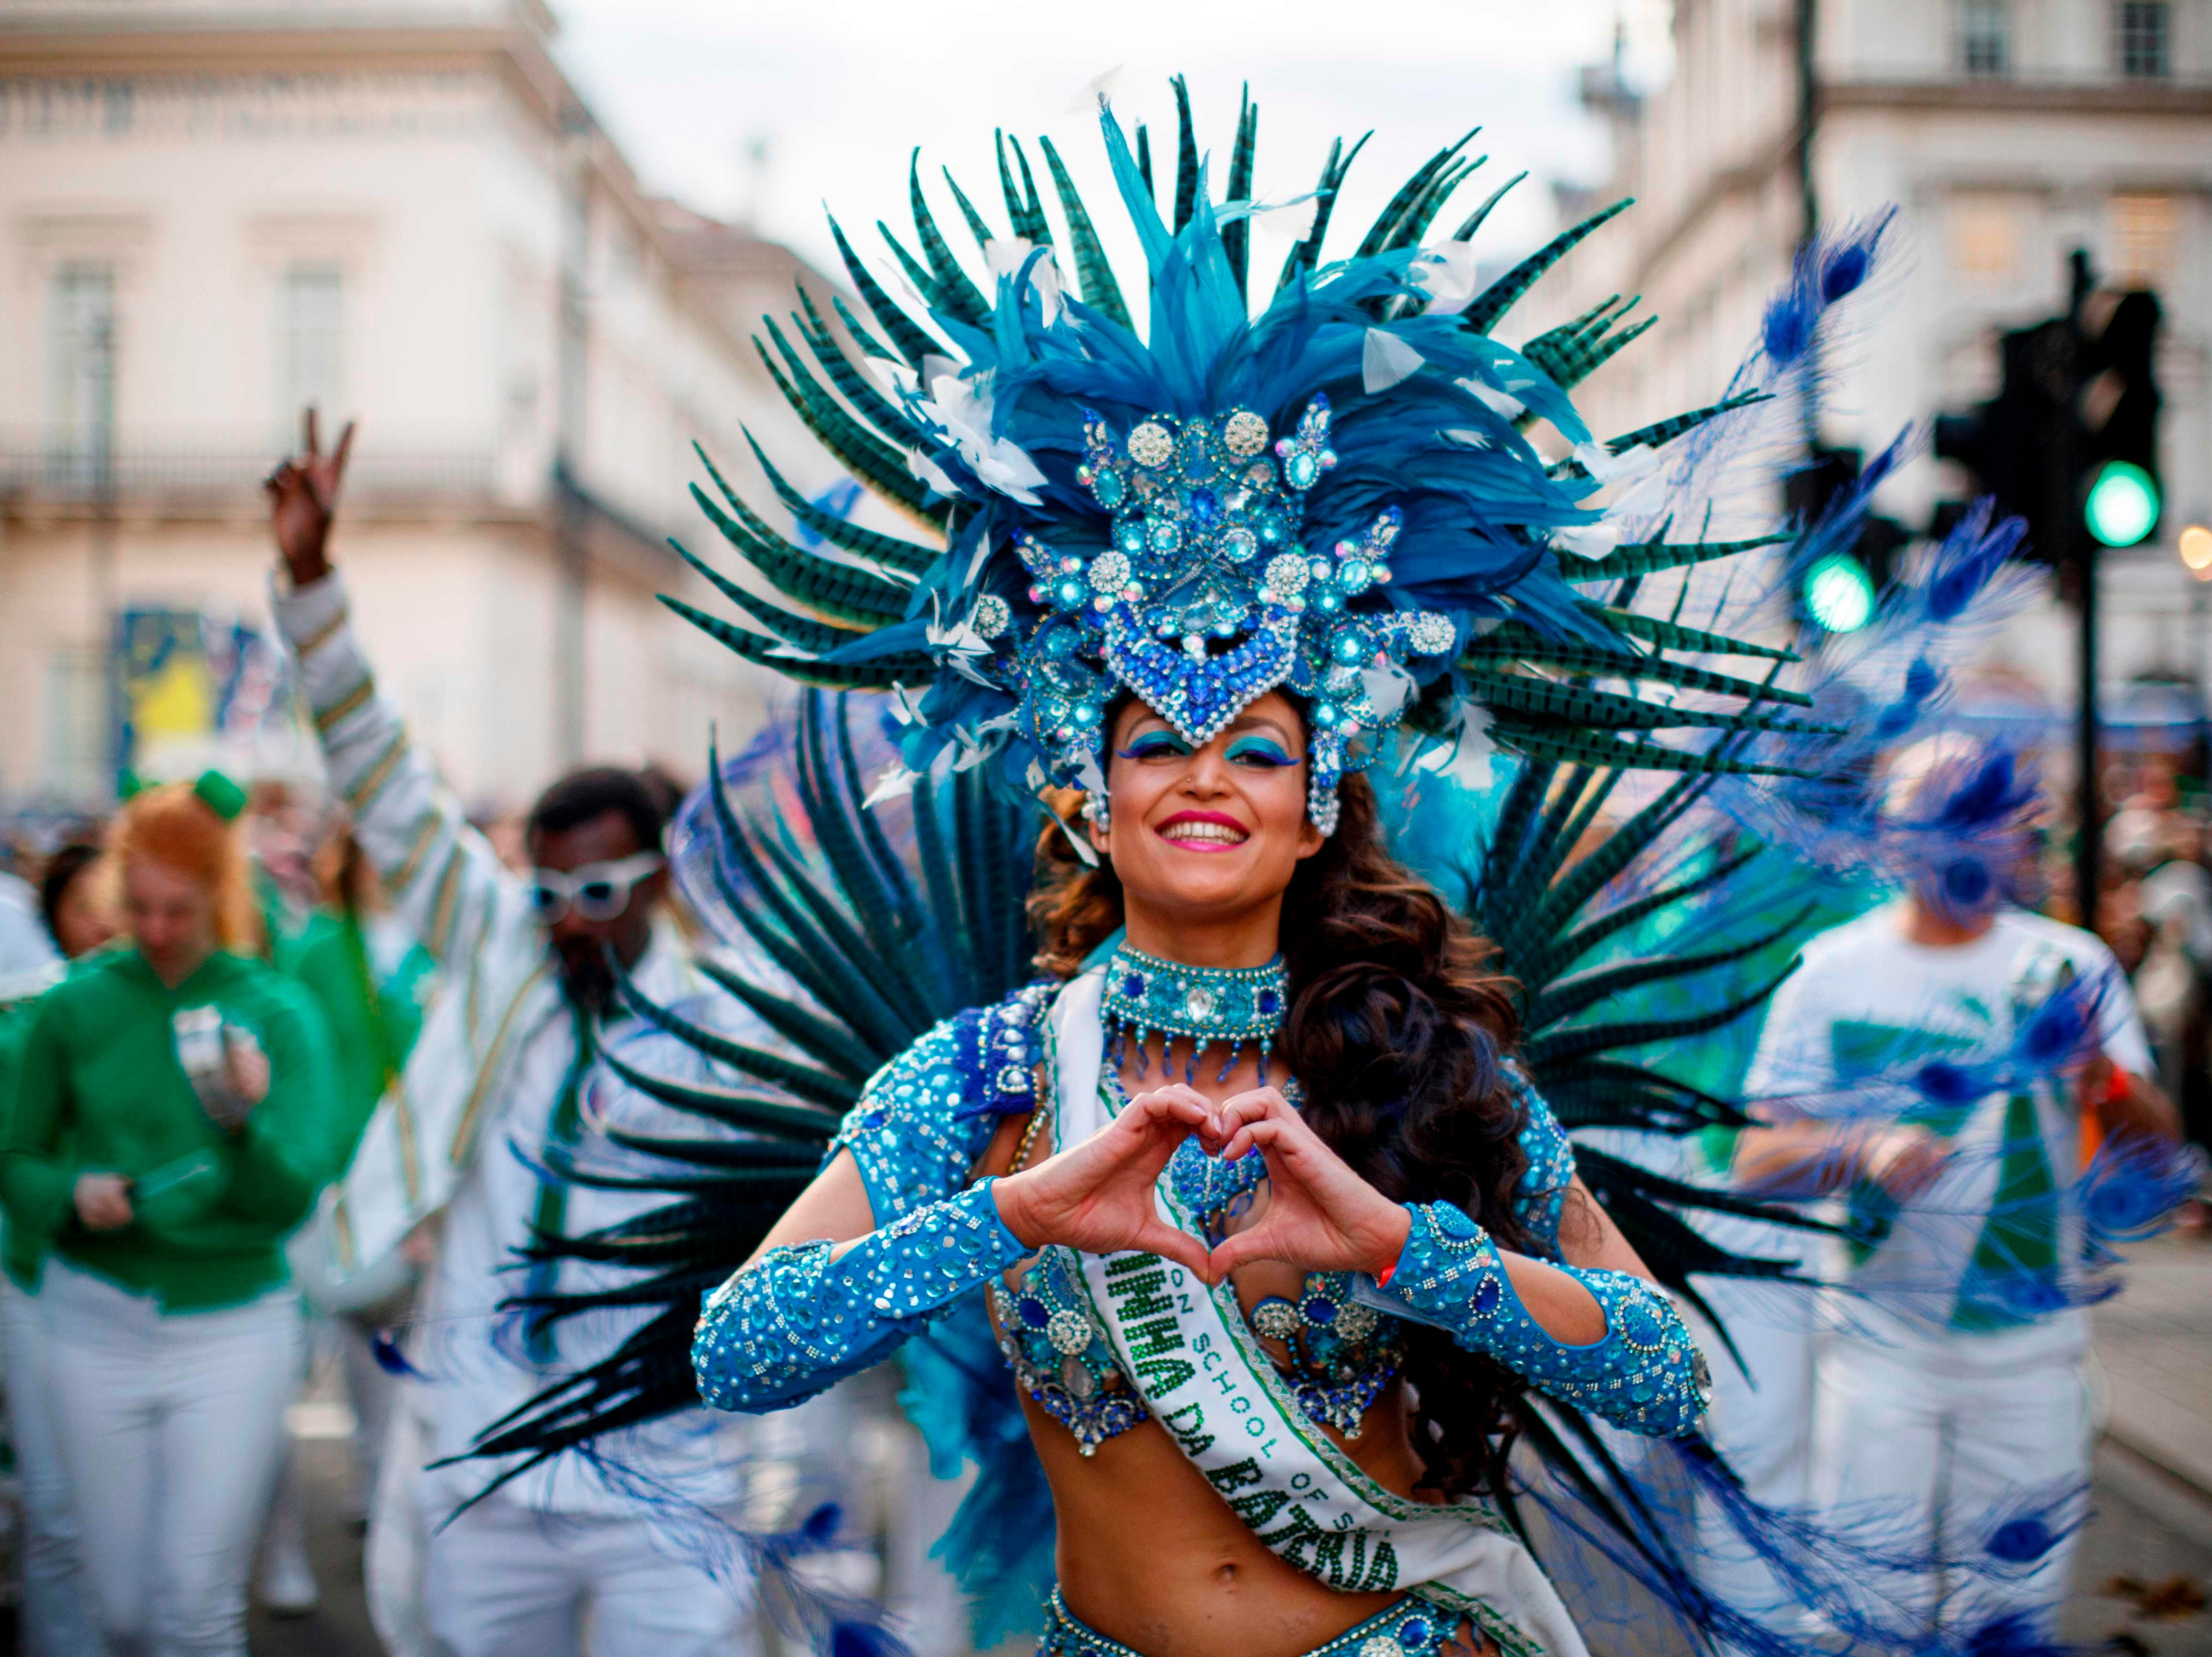 Participants take part in the annual New Year's Day Parade in central London, on Jan. 1, 2019.